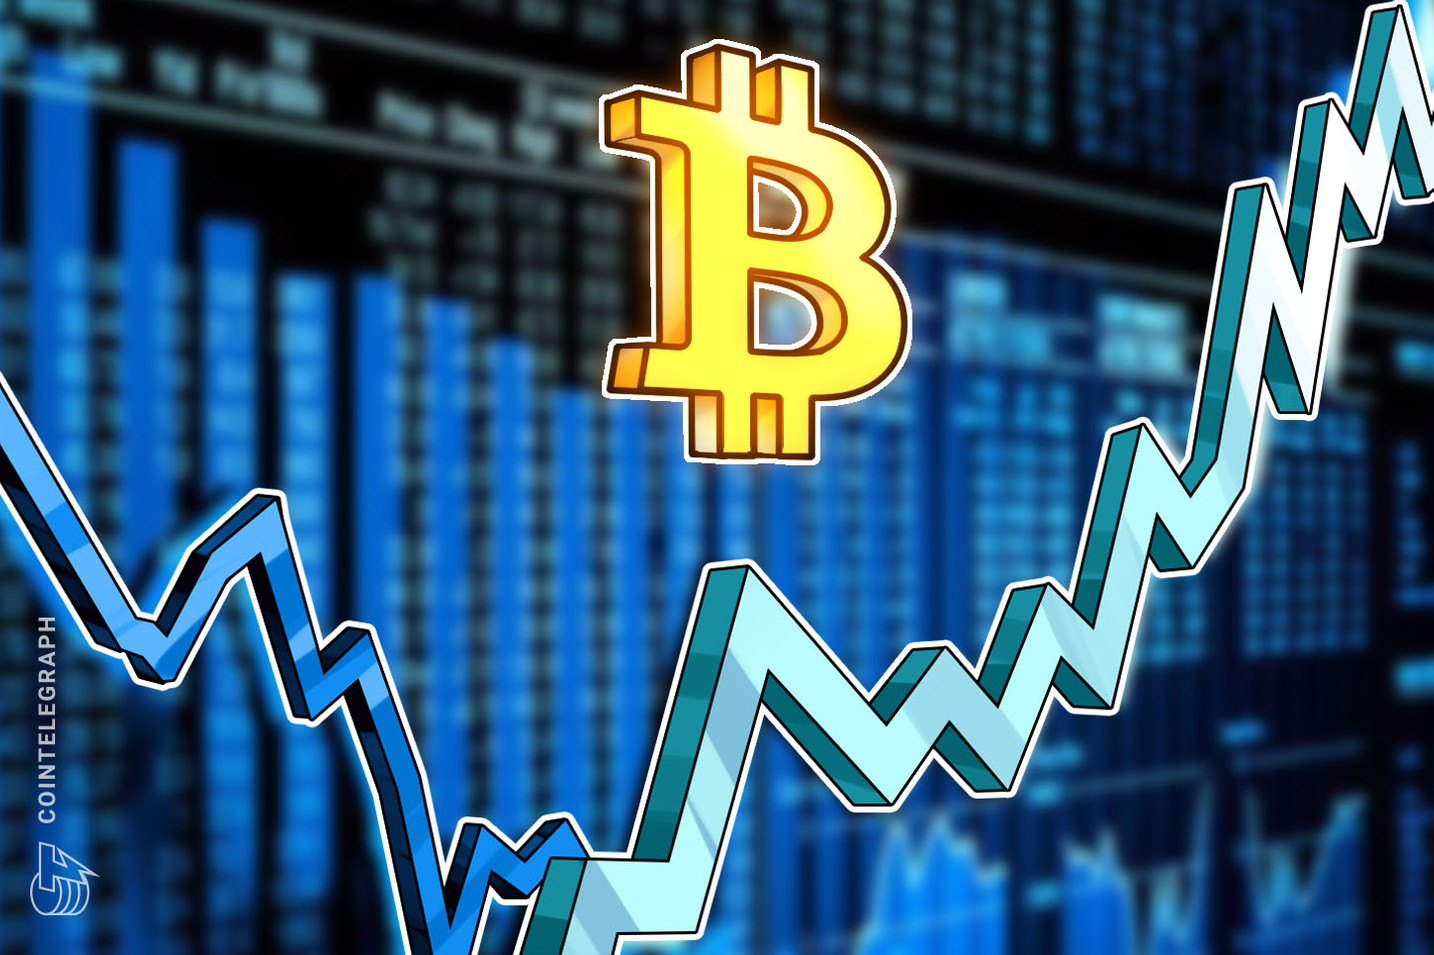 2021 pode confirmar 'Superciclo' do Bitcoin, balanço do Fed atingindo novo recorde